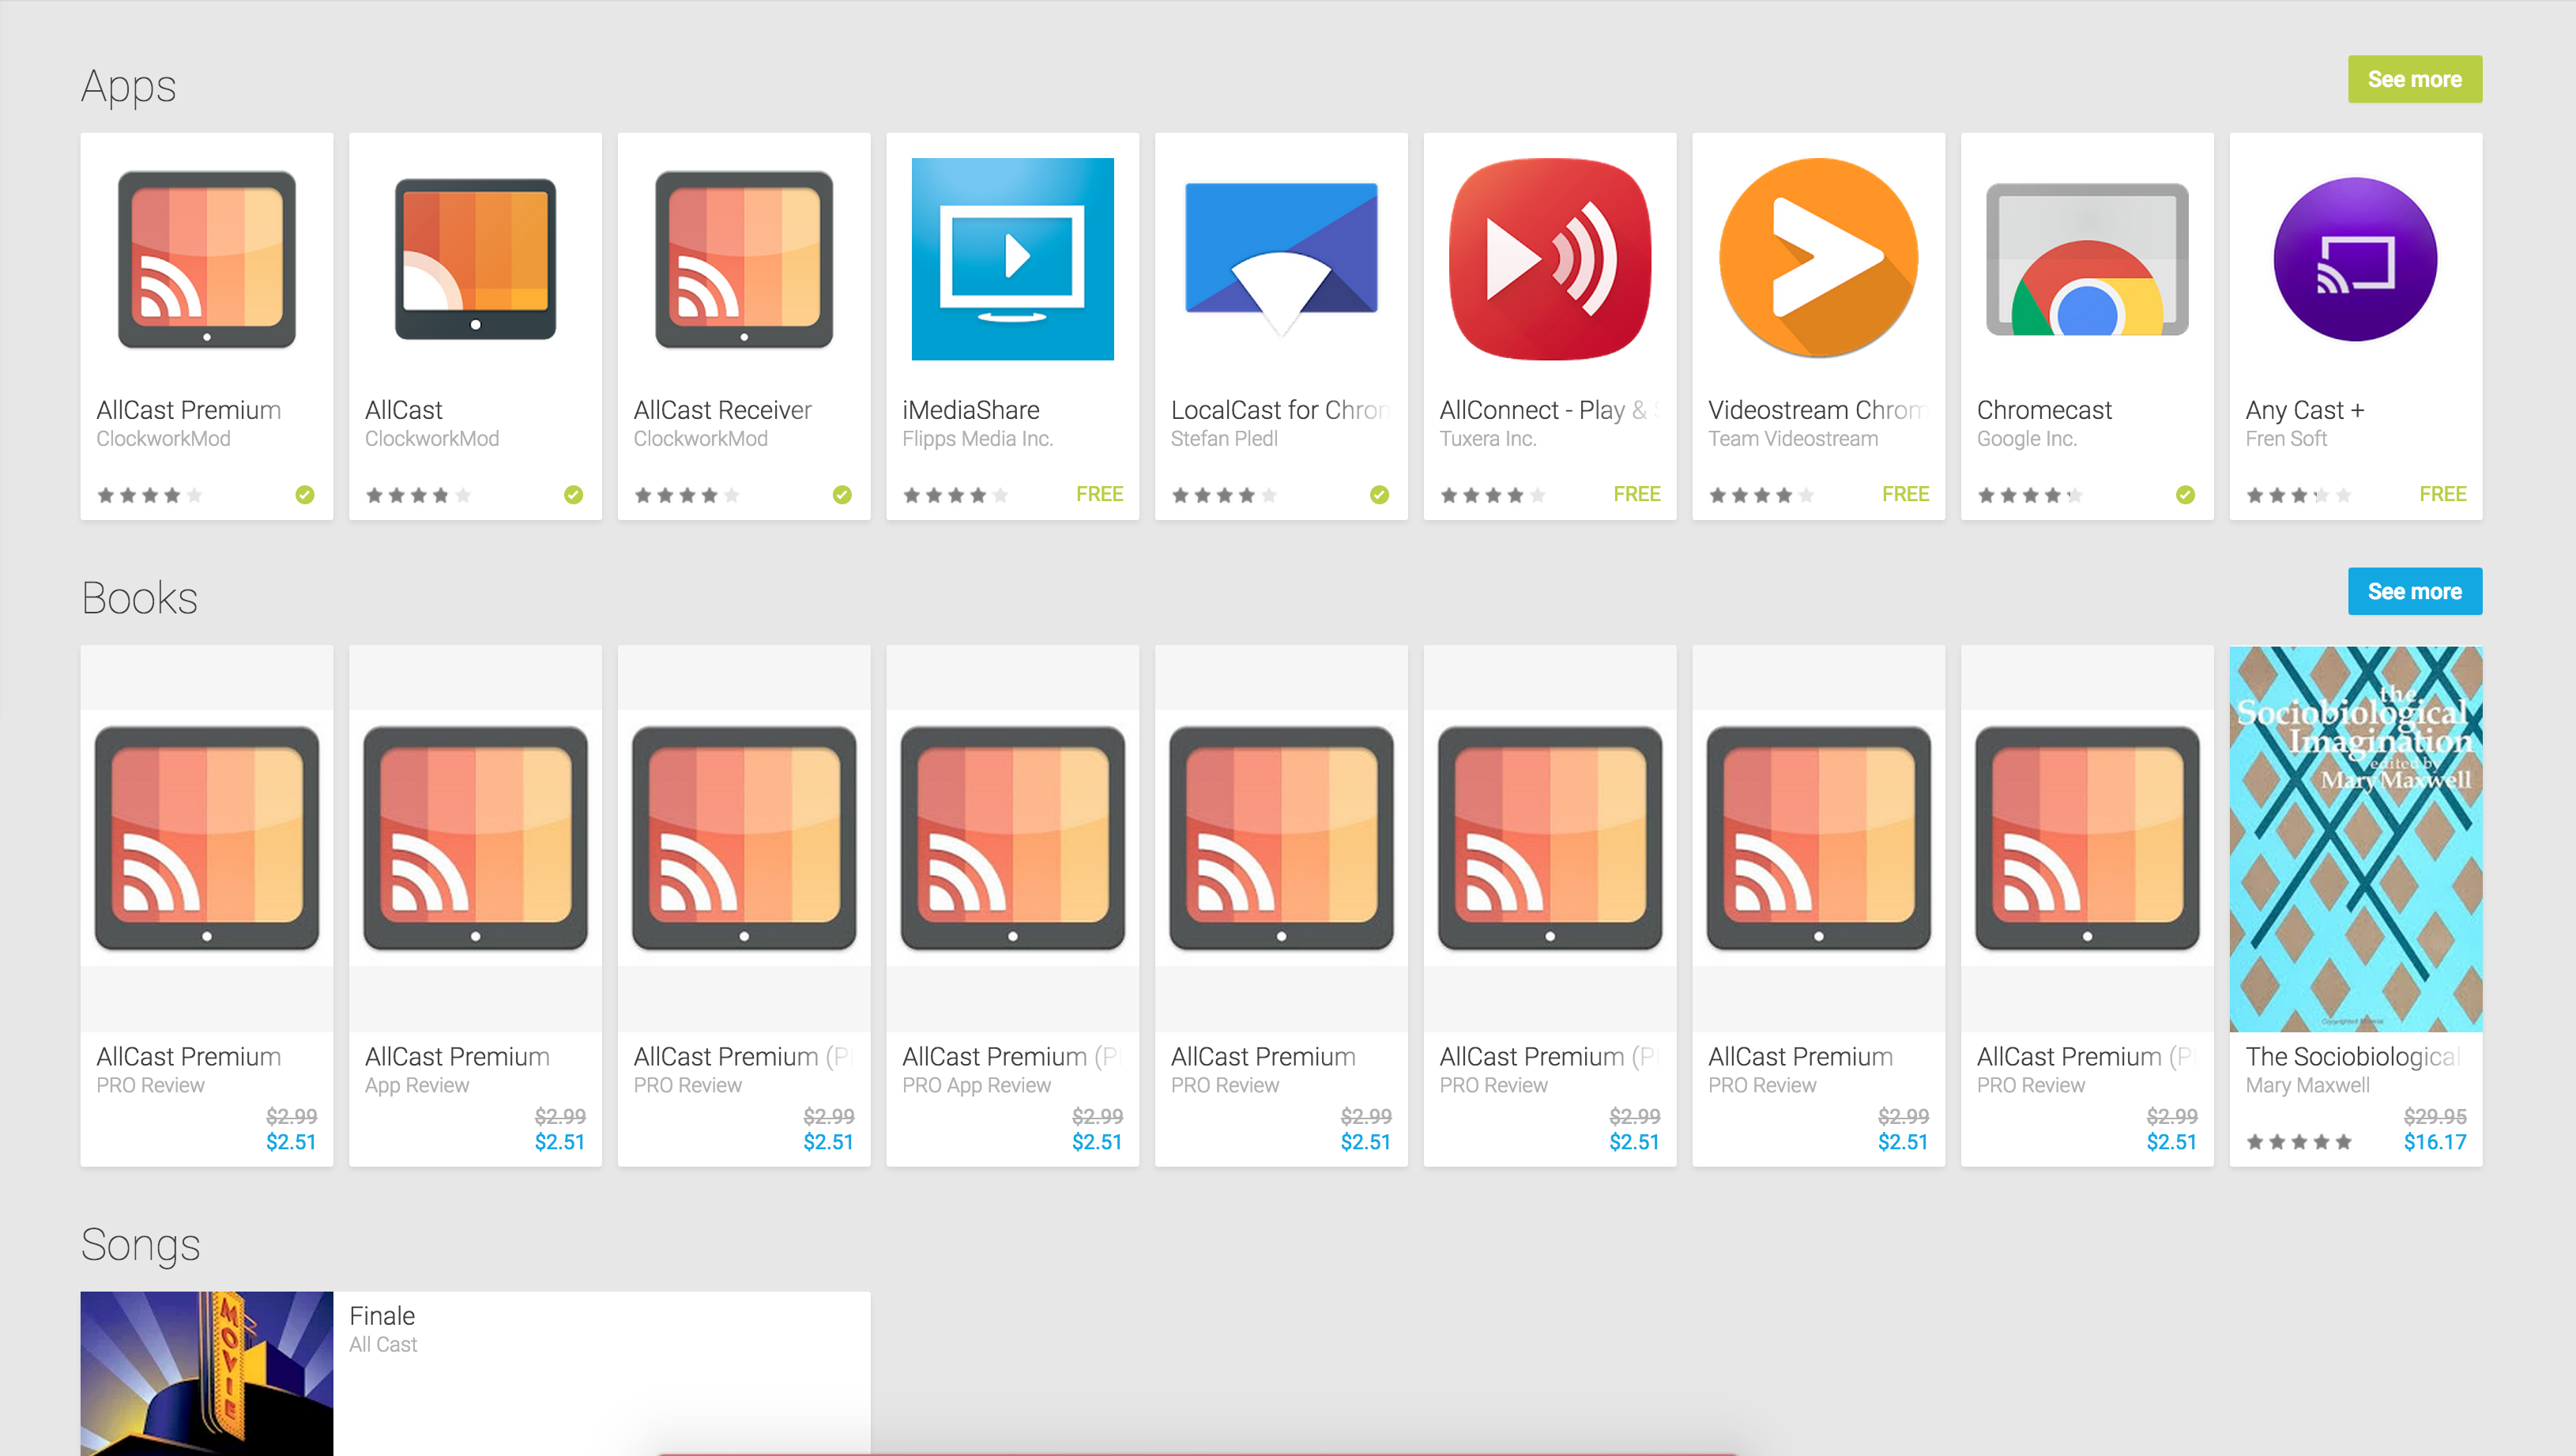 Google Play Books Still Has An Alarming Number Of Scammy